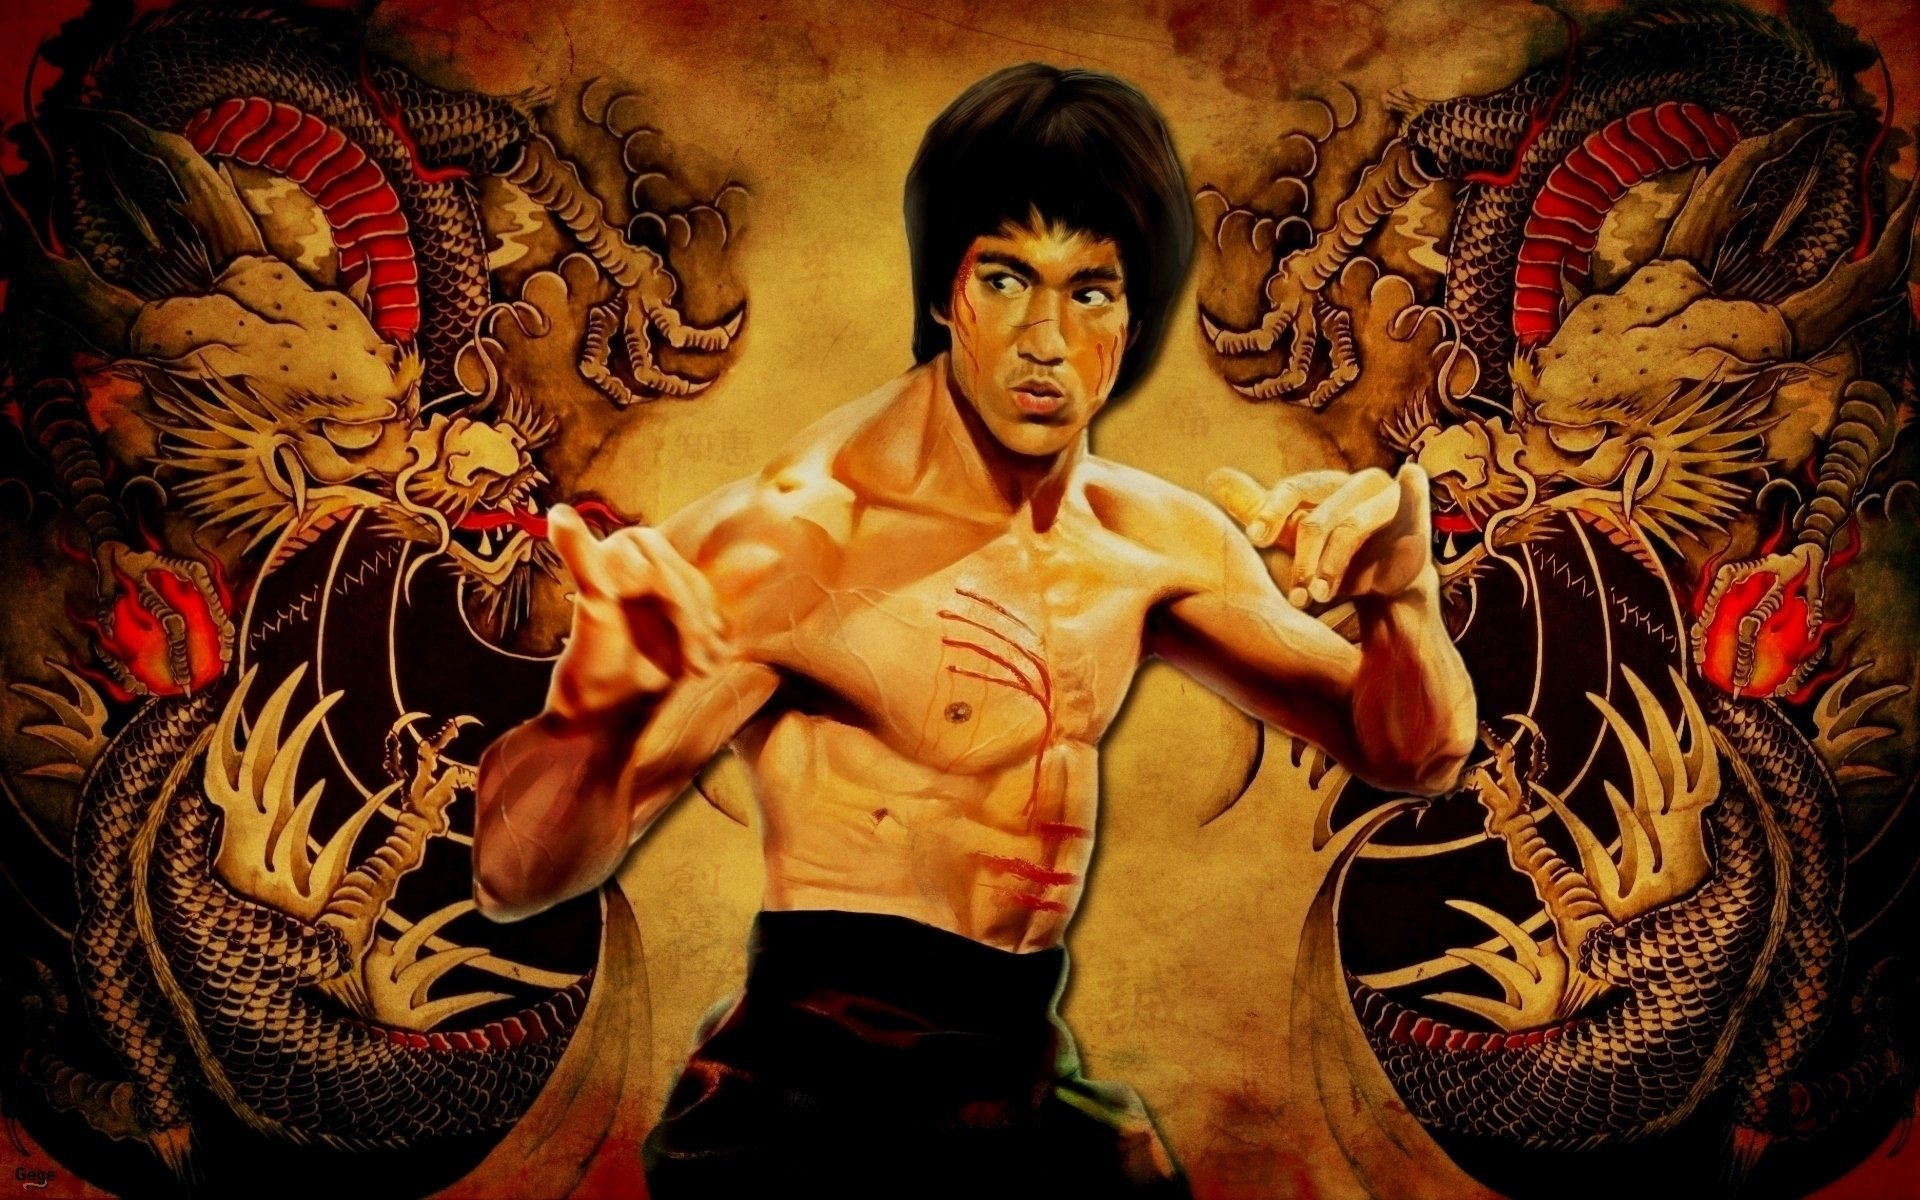 1920x1200 - Bruce Lee Wallpapers 9